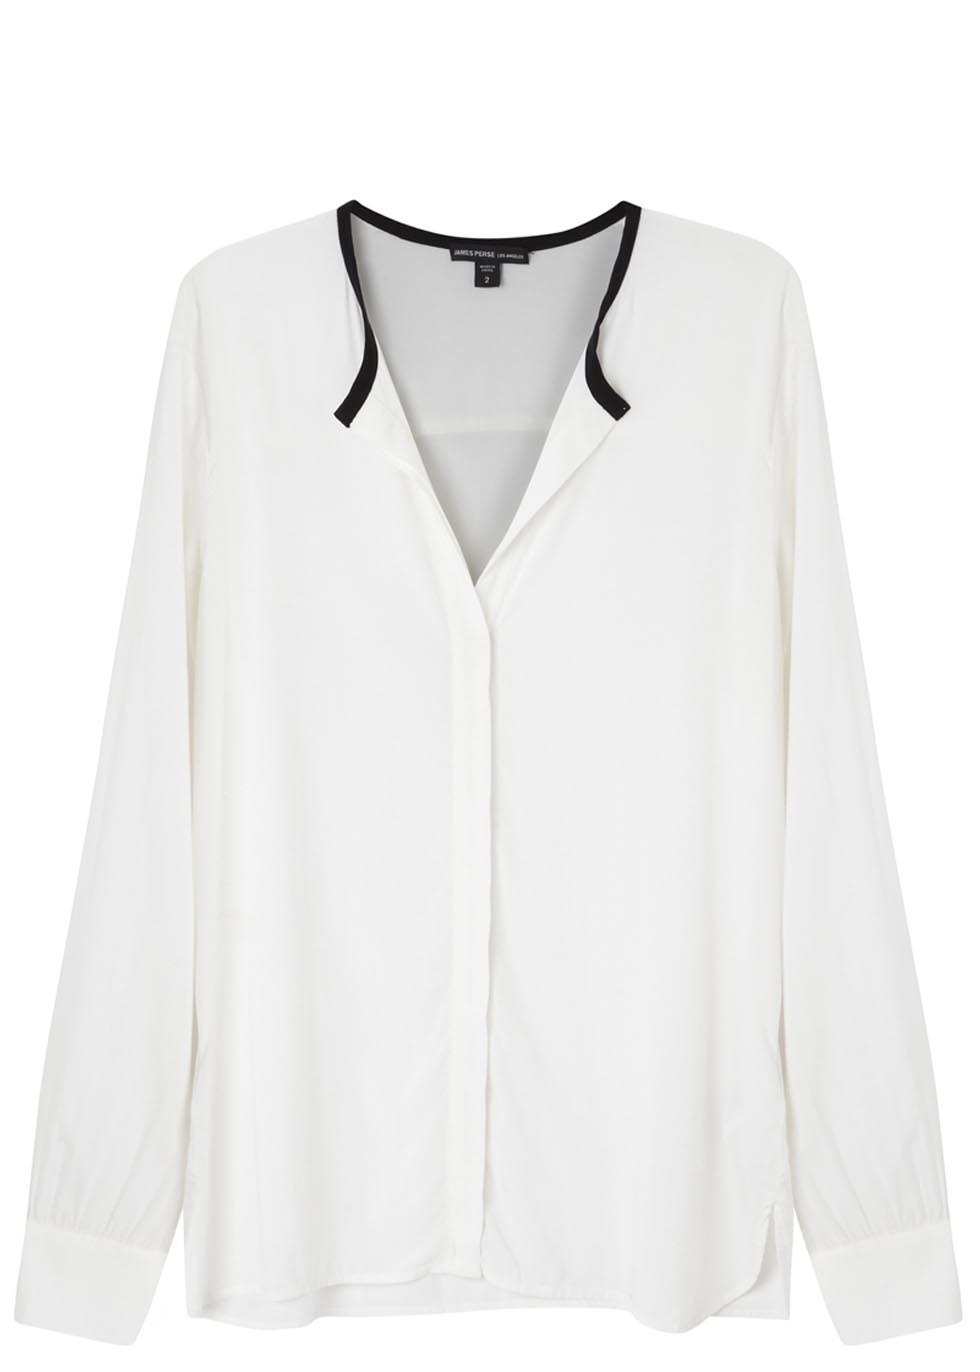 Monochrome Oversized Blouse - neckline: v-neck; length: below the bottom; style: blouse; predominant colour: ivory/cream; secondary colour: black; occasions: casual, work, creative work; fibres: viscose/rayon - stretch; fit: loose; sleeve length: long sleeve; sleeve style: standard; pattern type: fabric; pattern size: standard; pattern: colourblock; texture group: other - light to midweight; season: s/s 2014; trends: monochrome